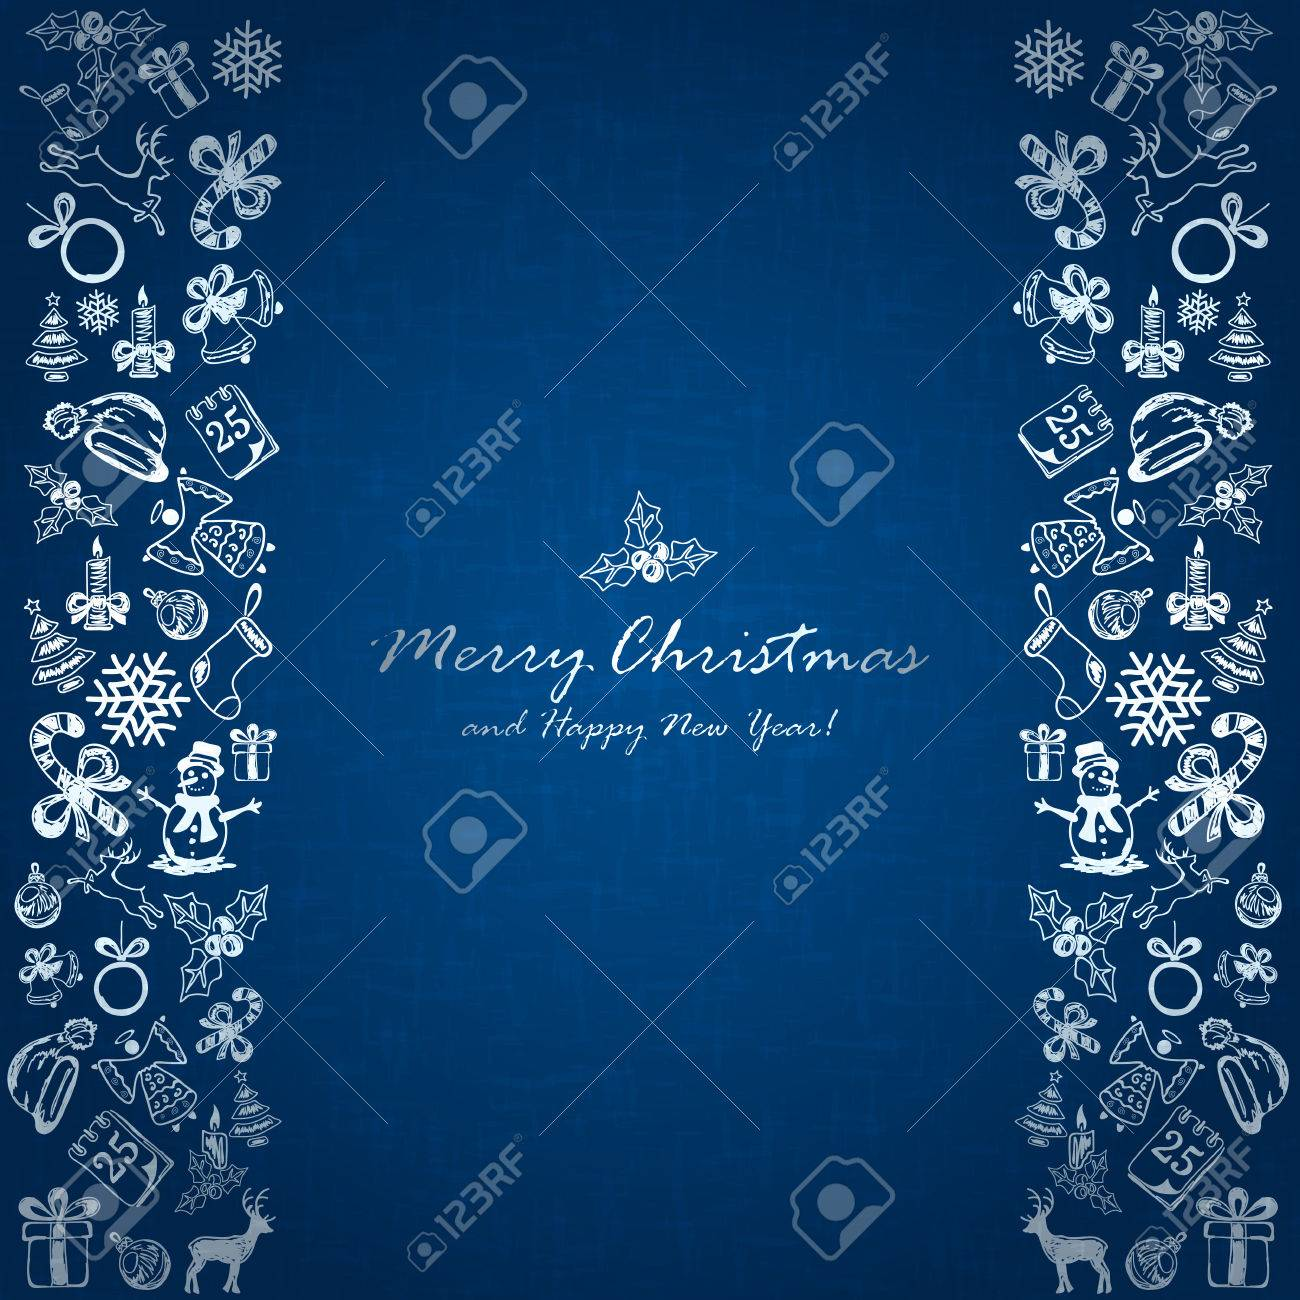 Silver Christmas Elements On Blue Background Holiday Decorations Royalty Free Cliparts Vectors And Stock Illustration Image 63827432